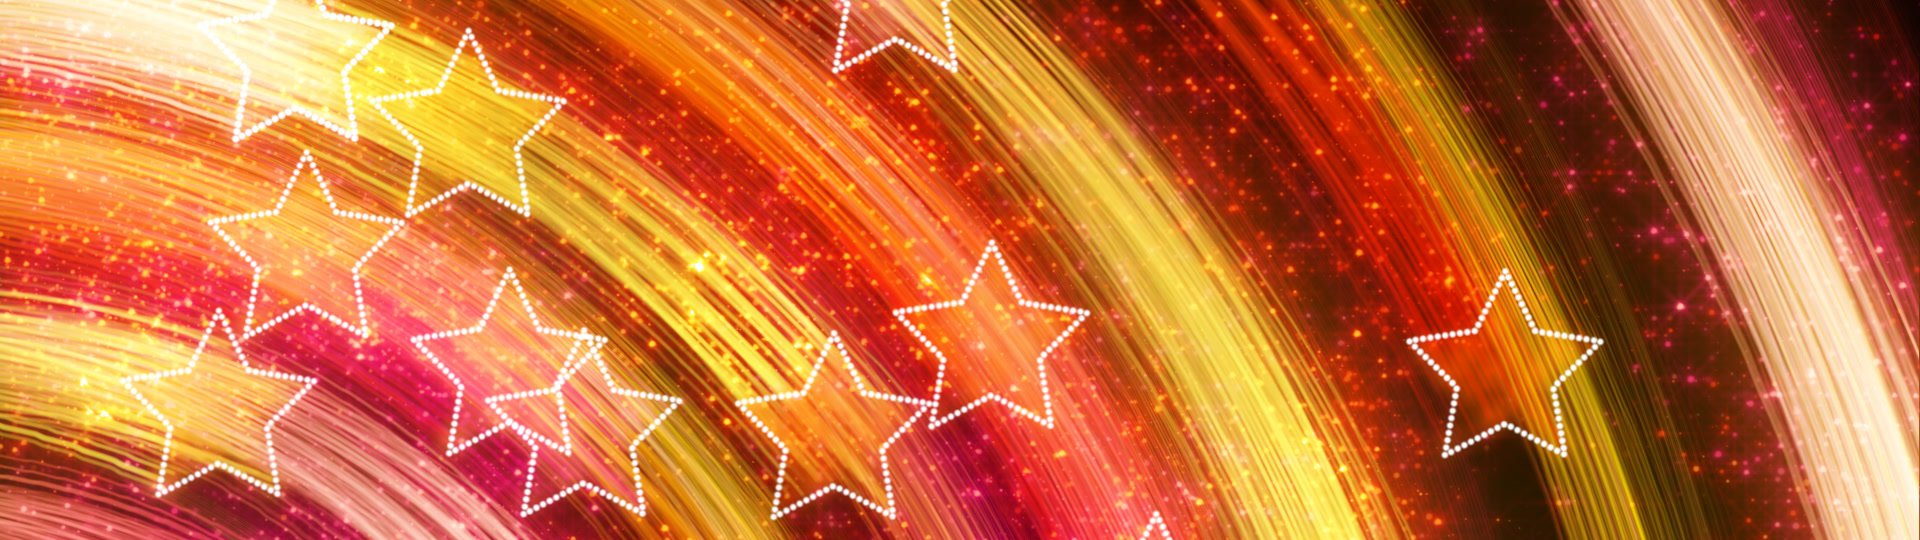 Disco stars abstract loopable background yellow pink | yellow pink disco stars. computer generated seamless loop abstract motion background. - ID:12830